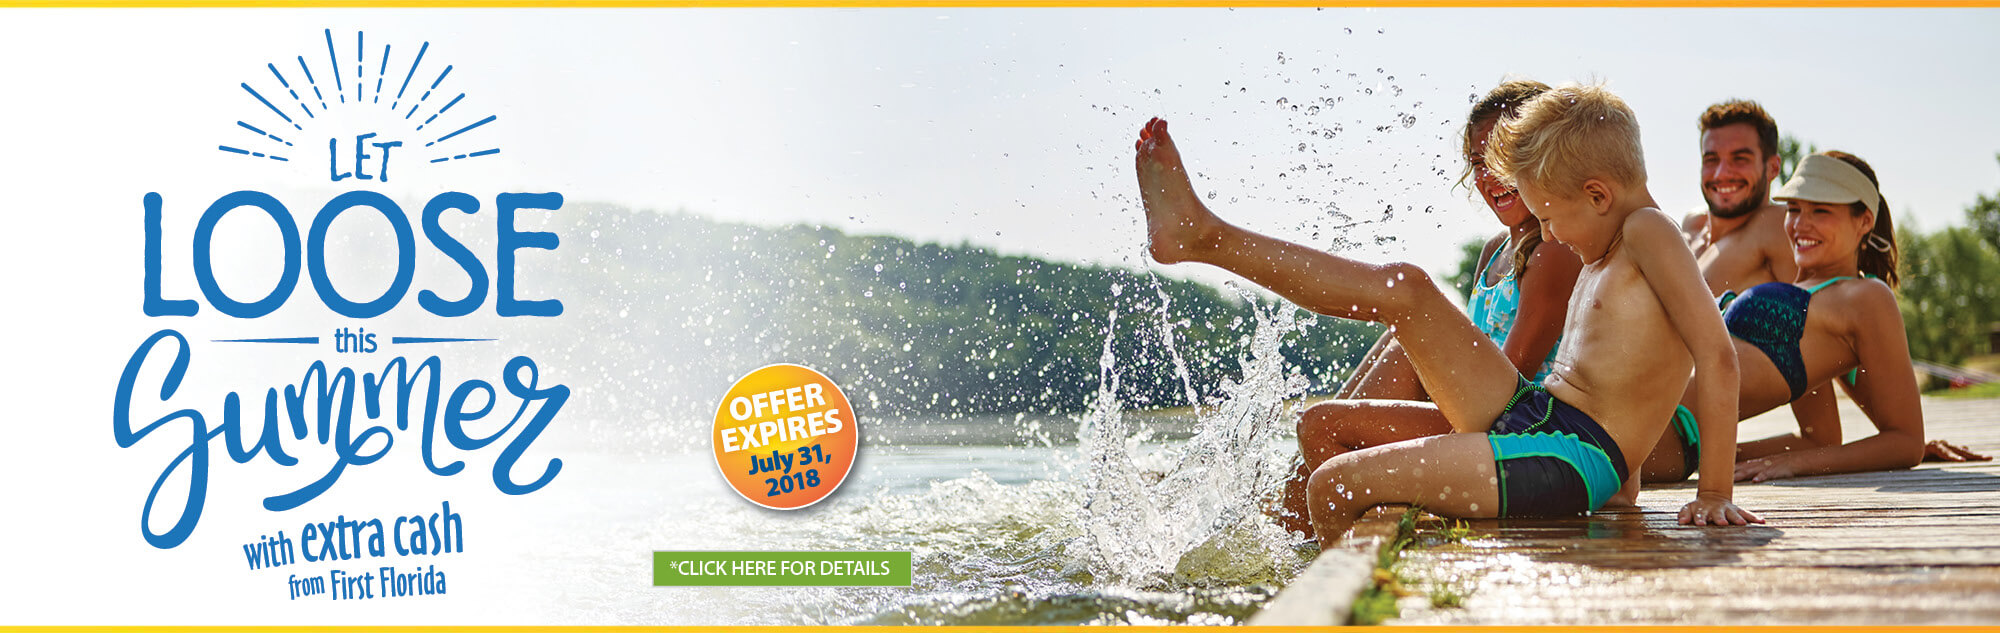 Let loose this summer with extra cash from First Florida. Offer expires July 31, 2018. Click for details.